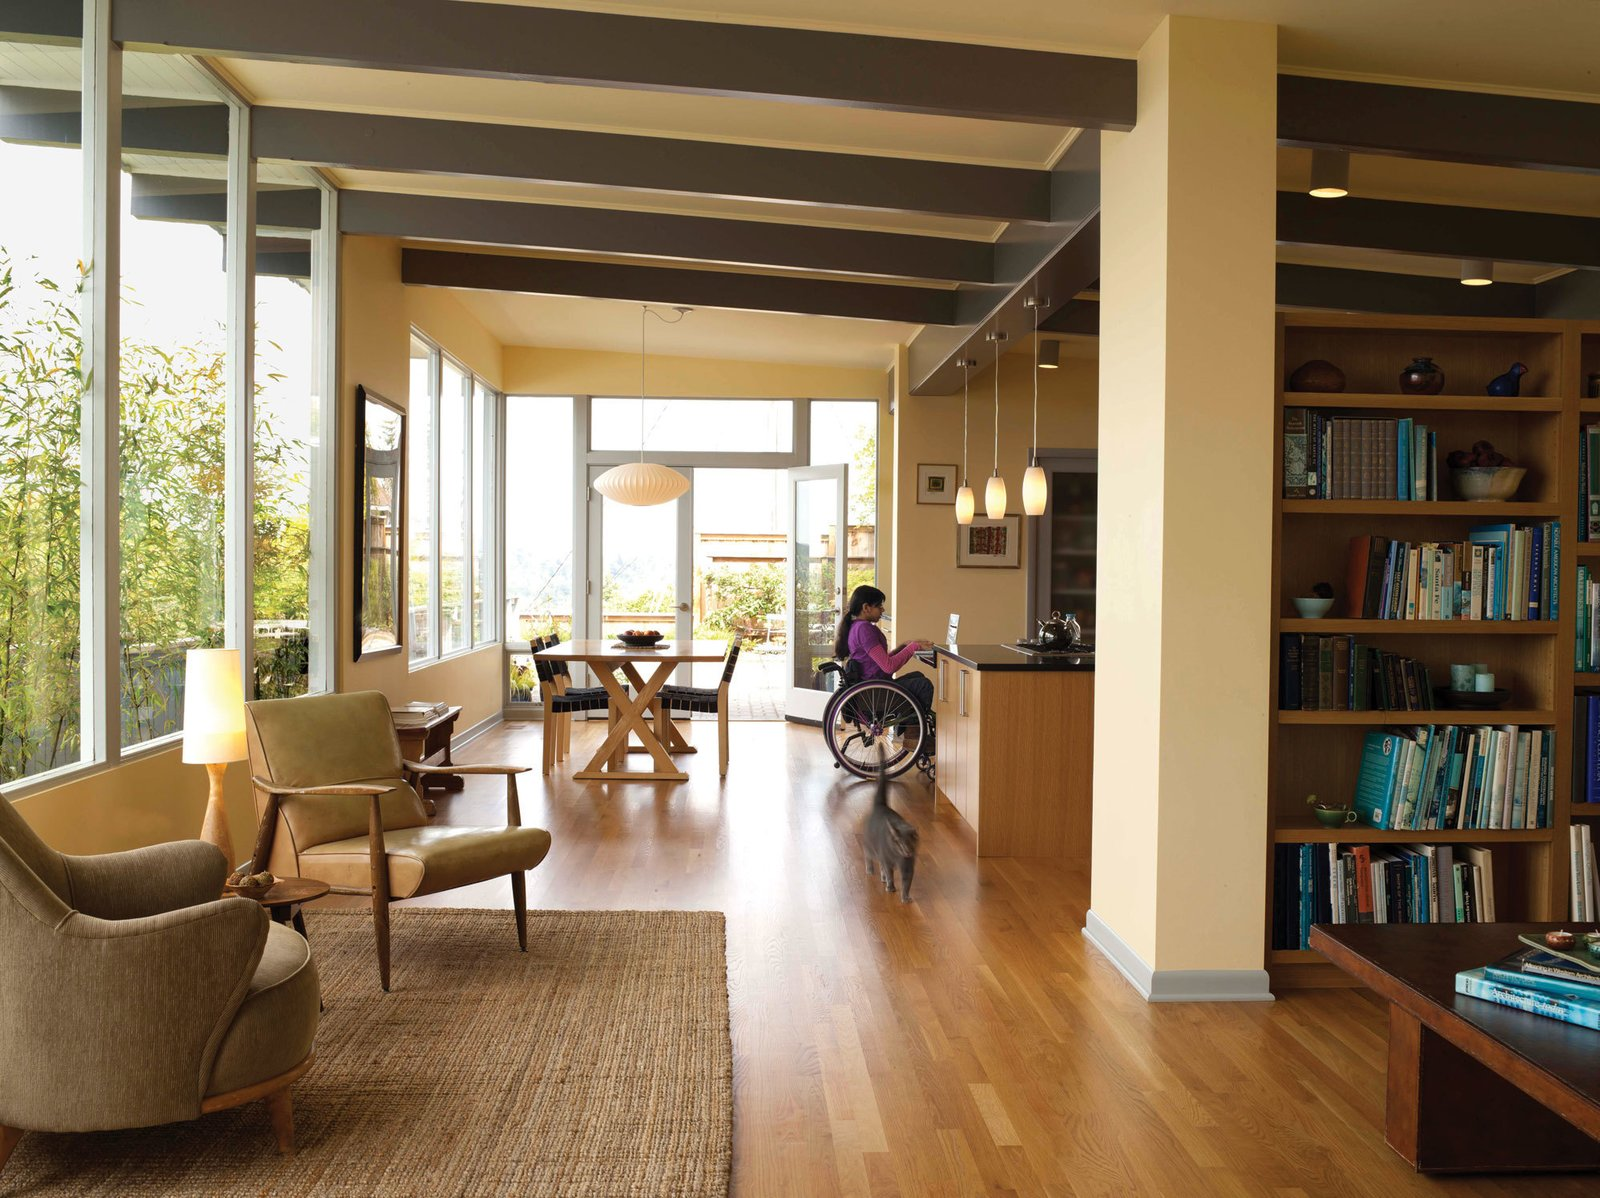 The respective work of Karen Braitmayer and Erick Mikiten—wheelchair users as well as architects—offer people of all abilities the opportunity to live in beautiful, thoughtfully conceived spaces. They'll join us for a conversation about the intersection between universal design and environmental sustainability. Braitmayer will also discuss the renovation of her own home, pictured.